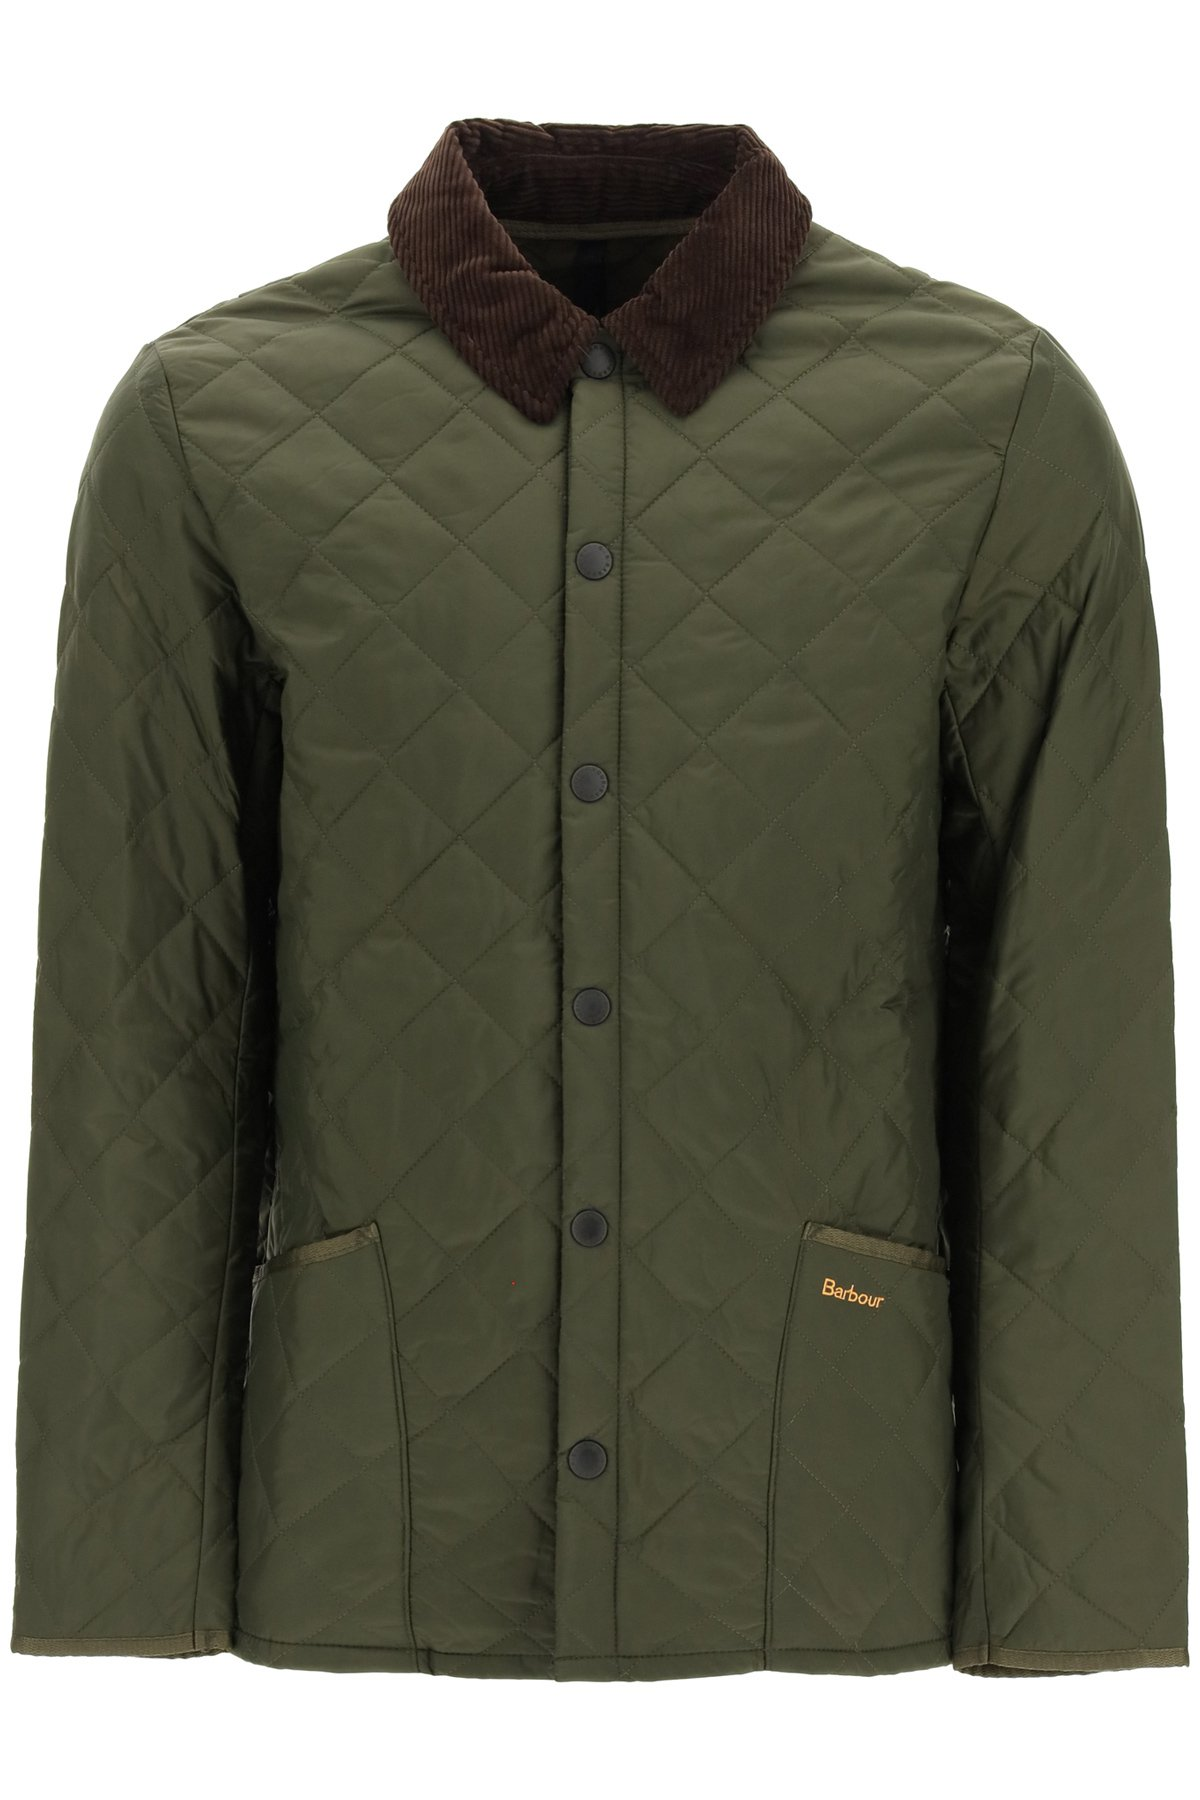 Barbour giacca heritage liddesdale